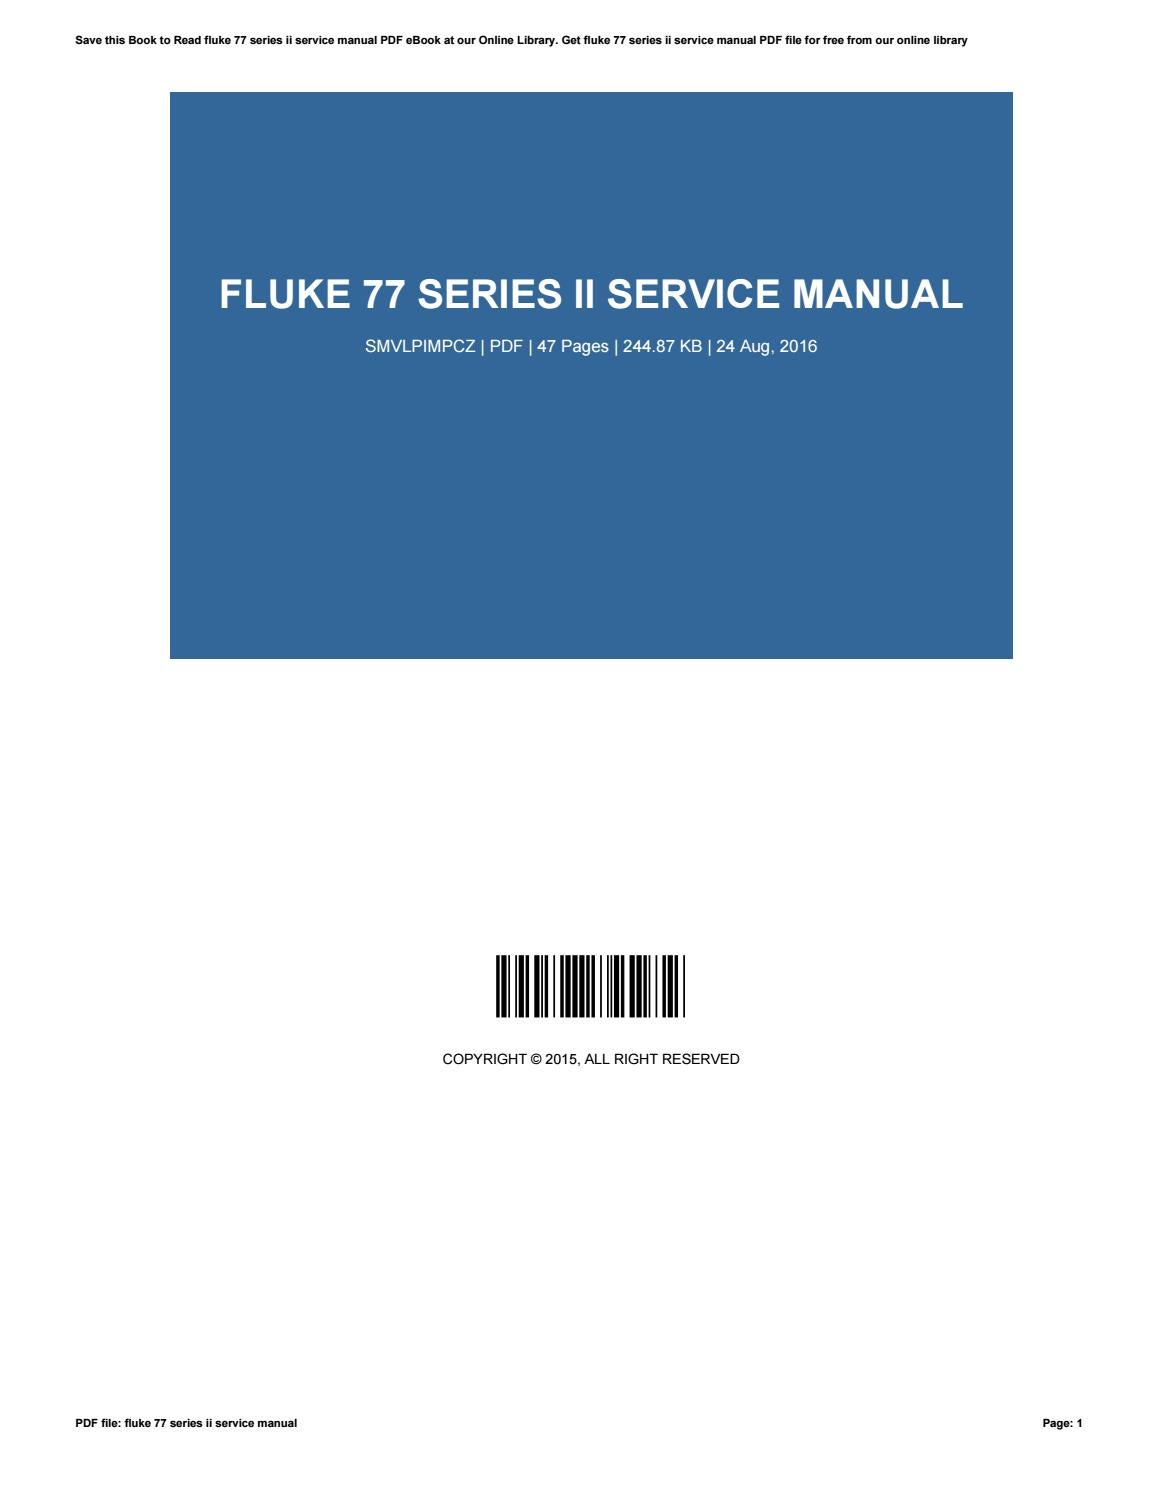 manual toyota 2f ebook